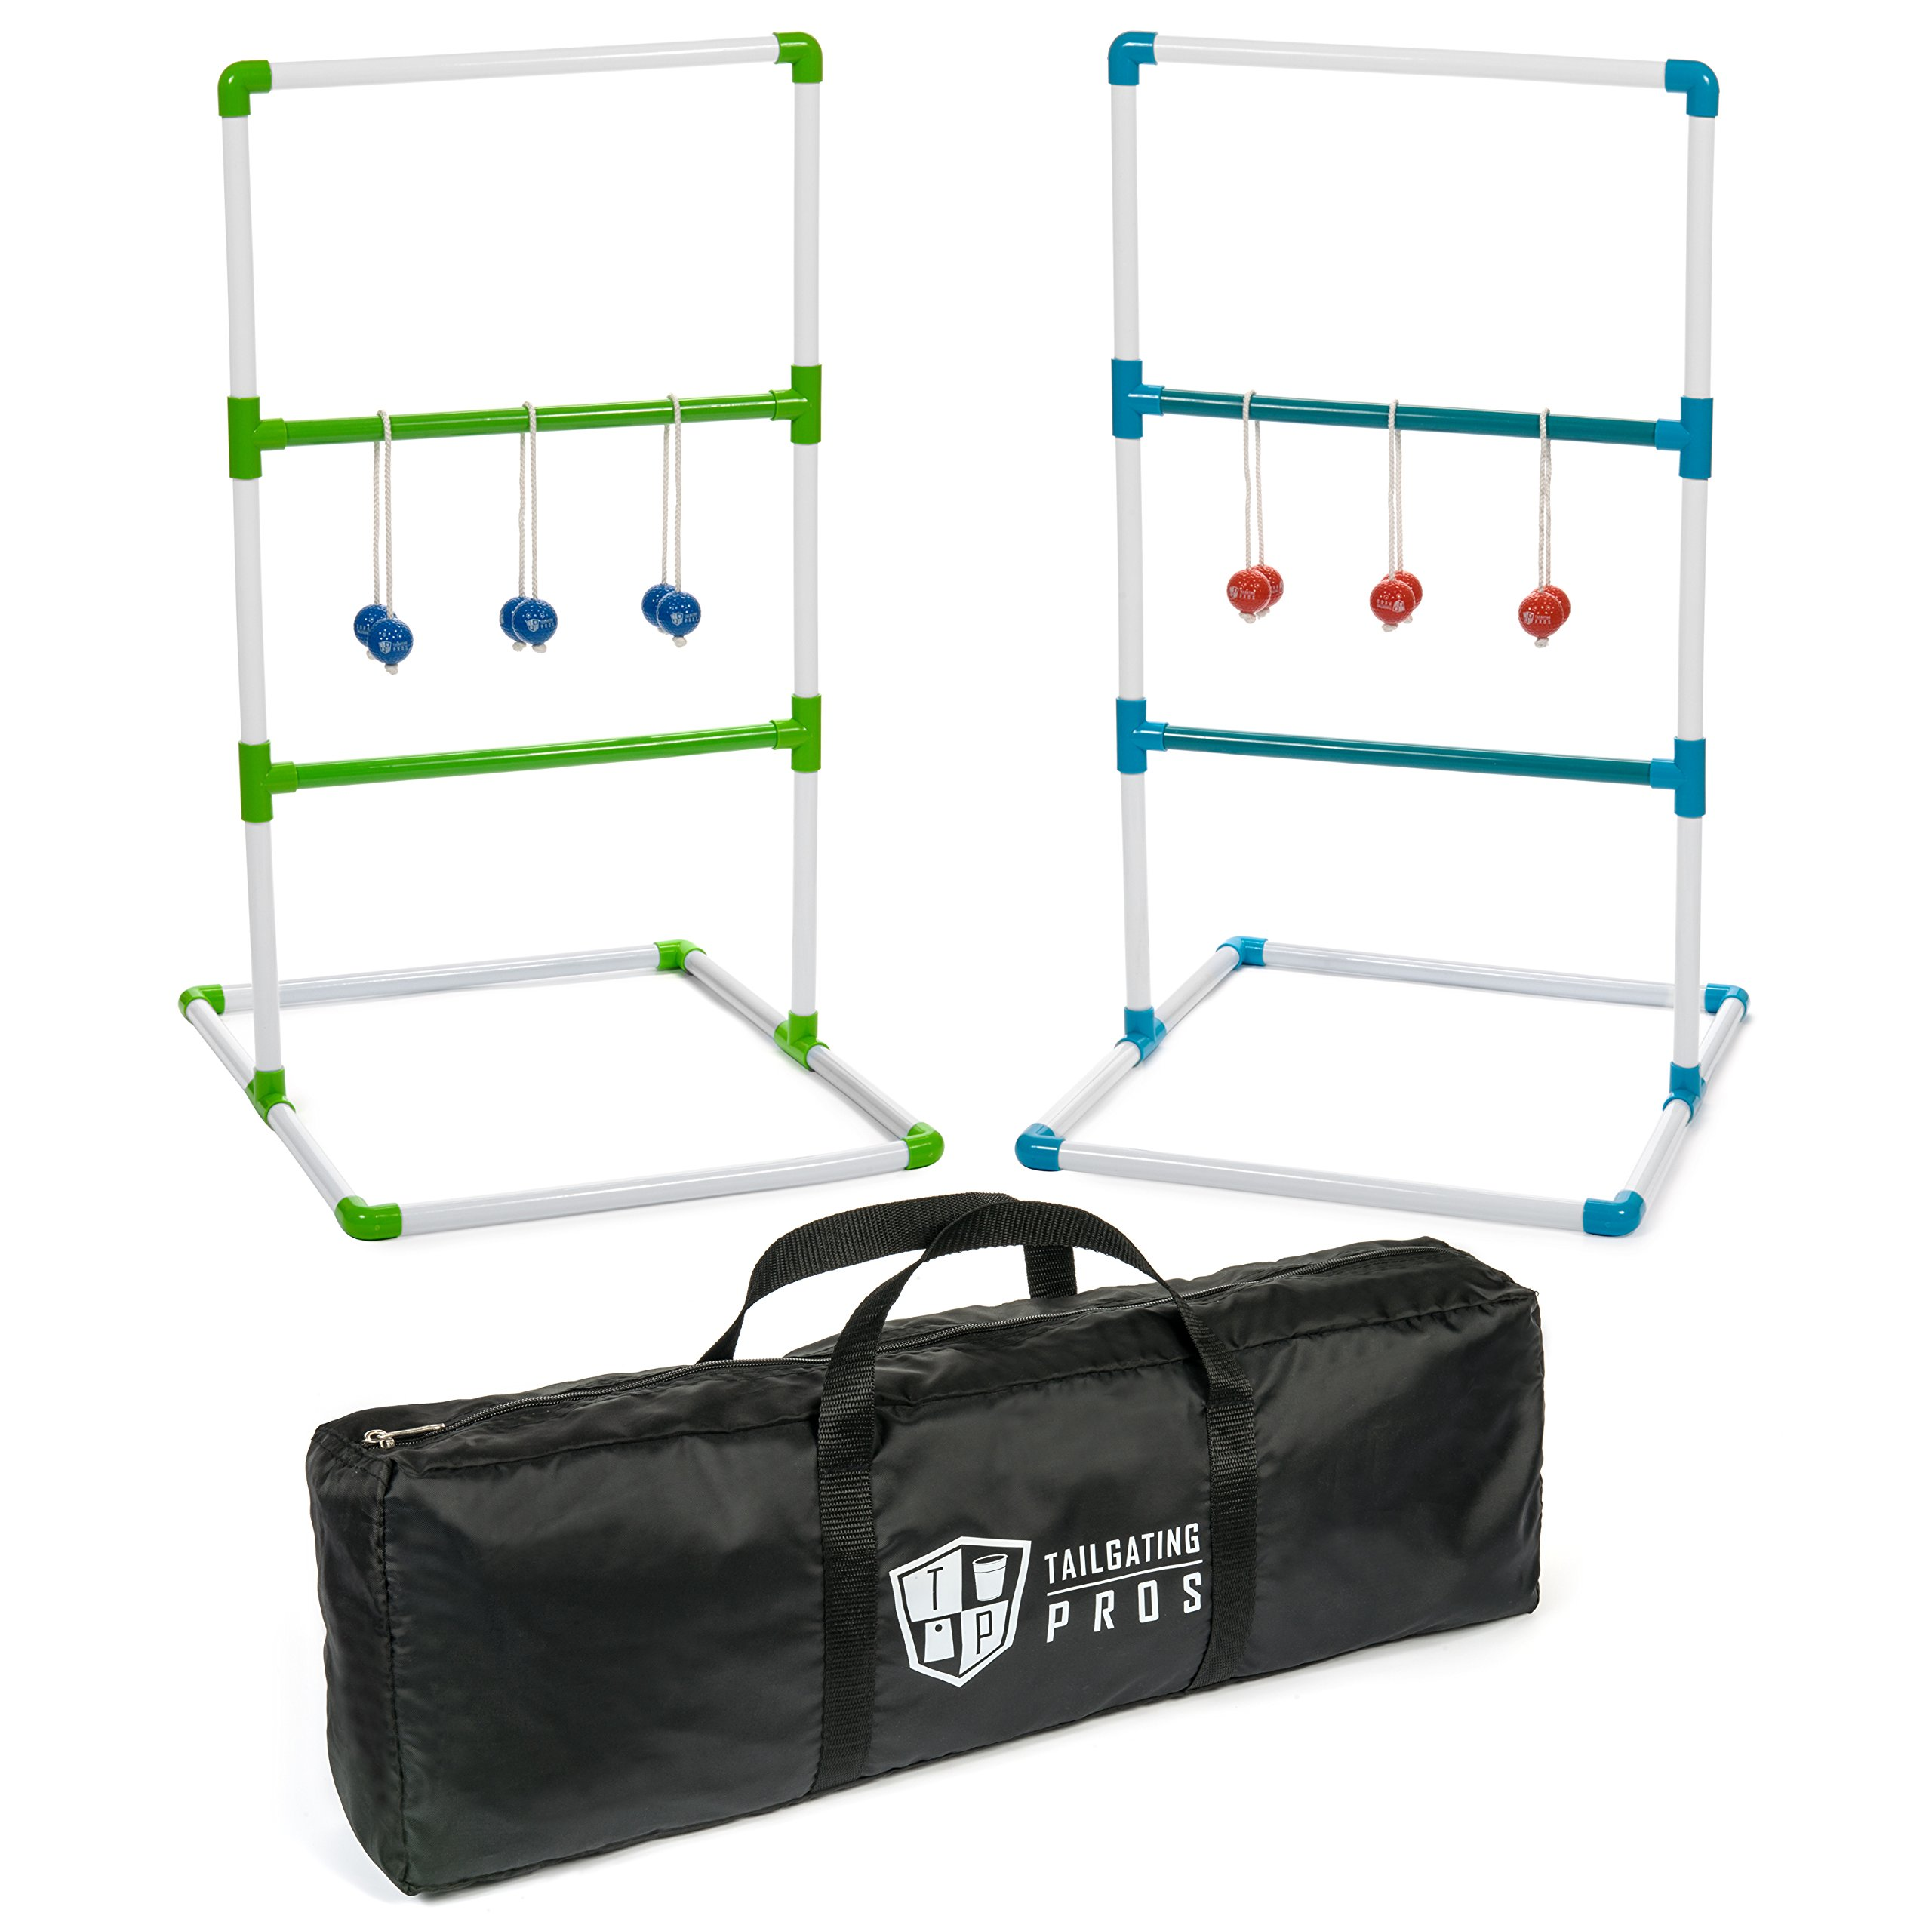 Tailgating Pros Premium Ladder Ball Game with Bolos and Carrying Case Ladder Toss by Tailgating Pros